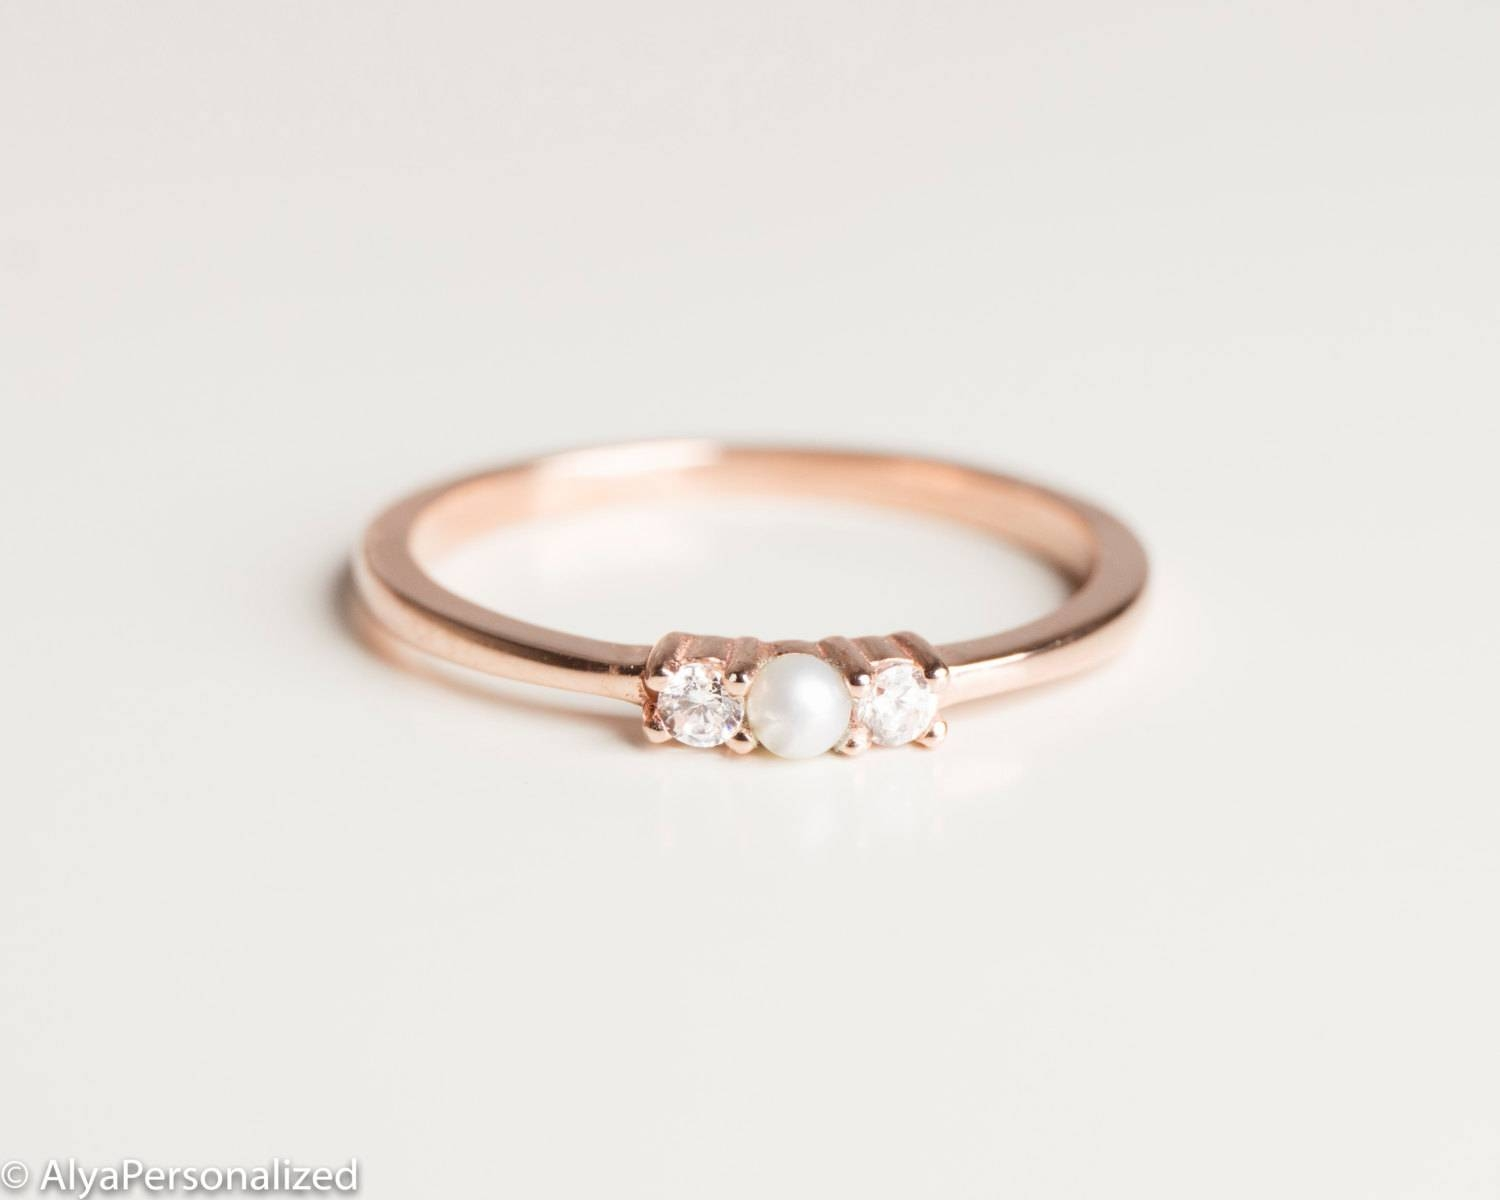 Anniversary Ring Simple Ring Band Thin Rose Gold Ring With Current 14k Gold Anniversary Rings (View 5 of 15)